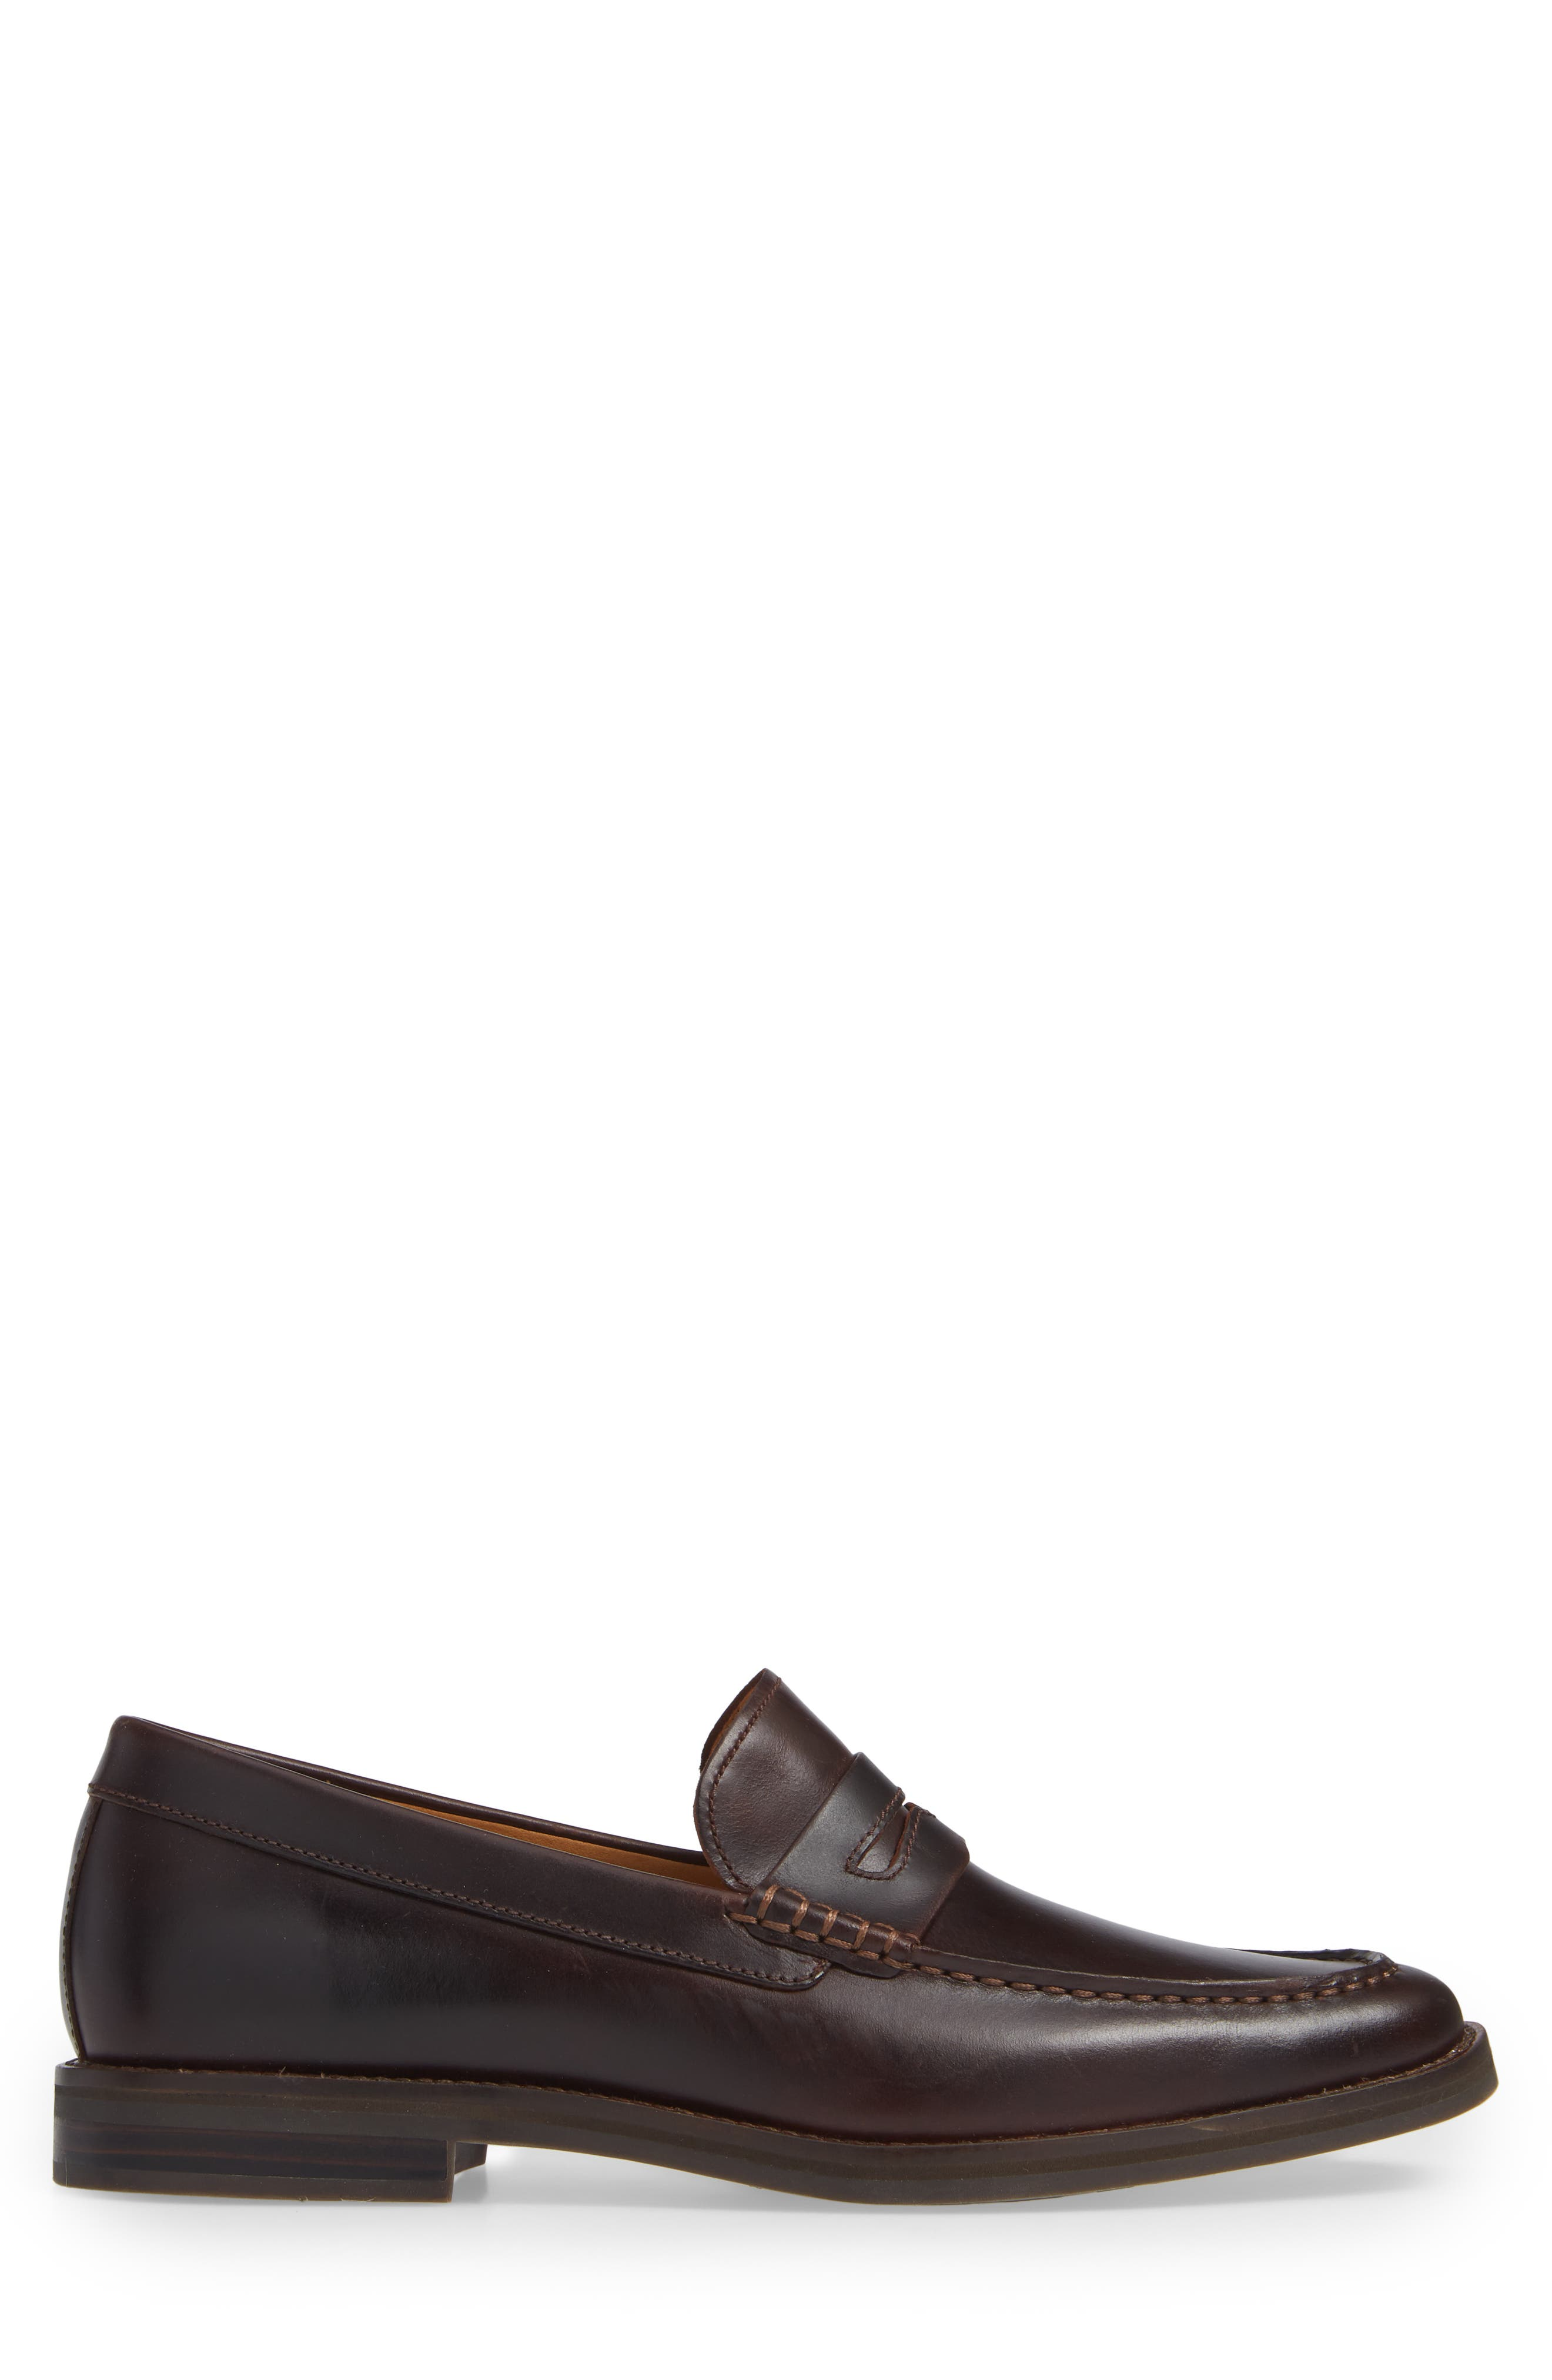 Gold Cup Exeter Penny Loafer,                             Alternate thumbnail 3, color,                             AMARETTO